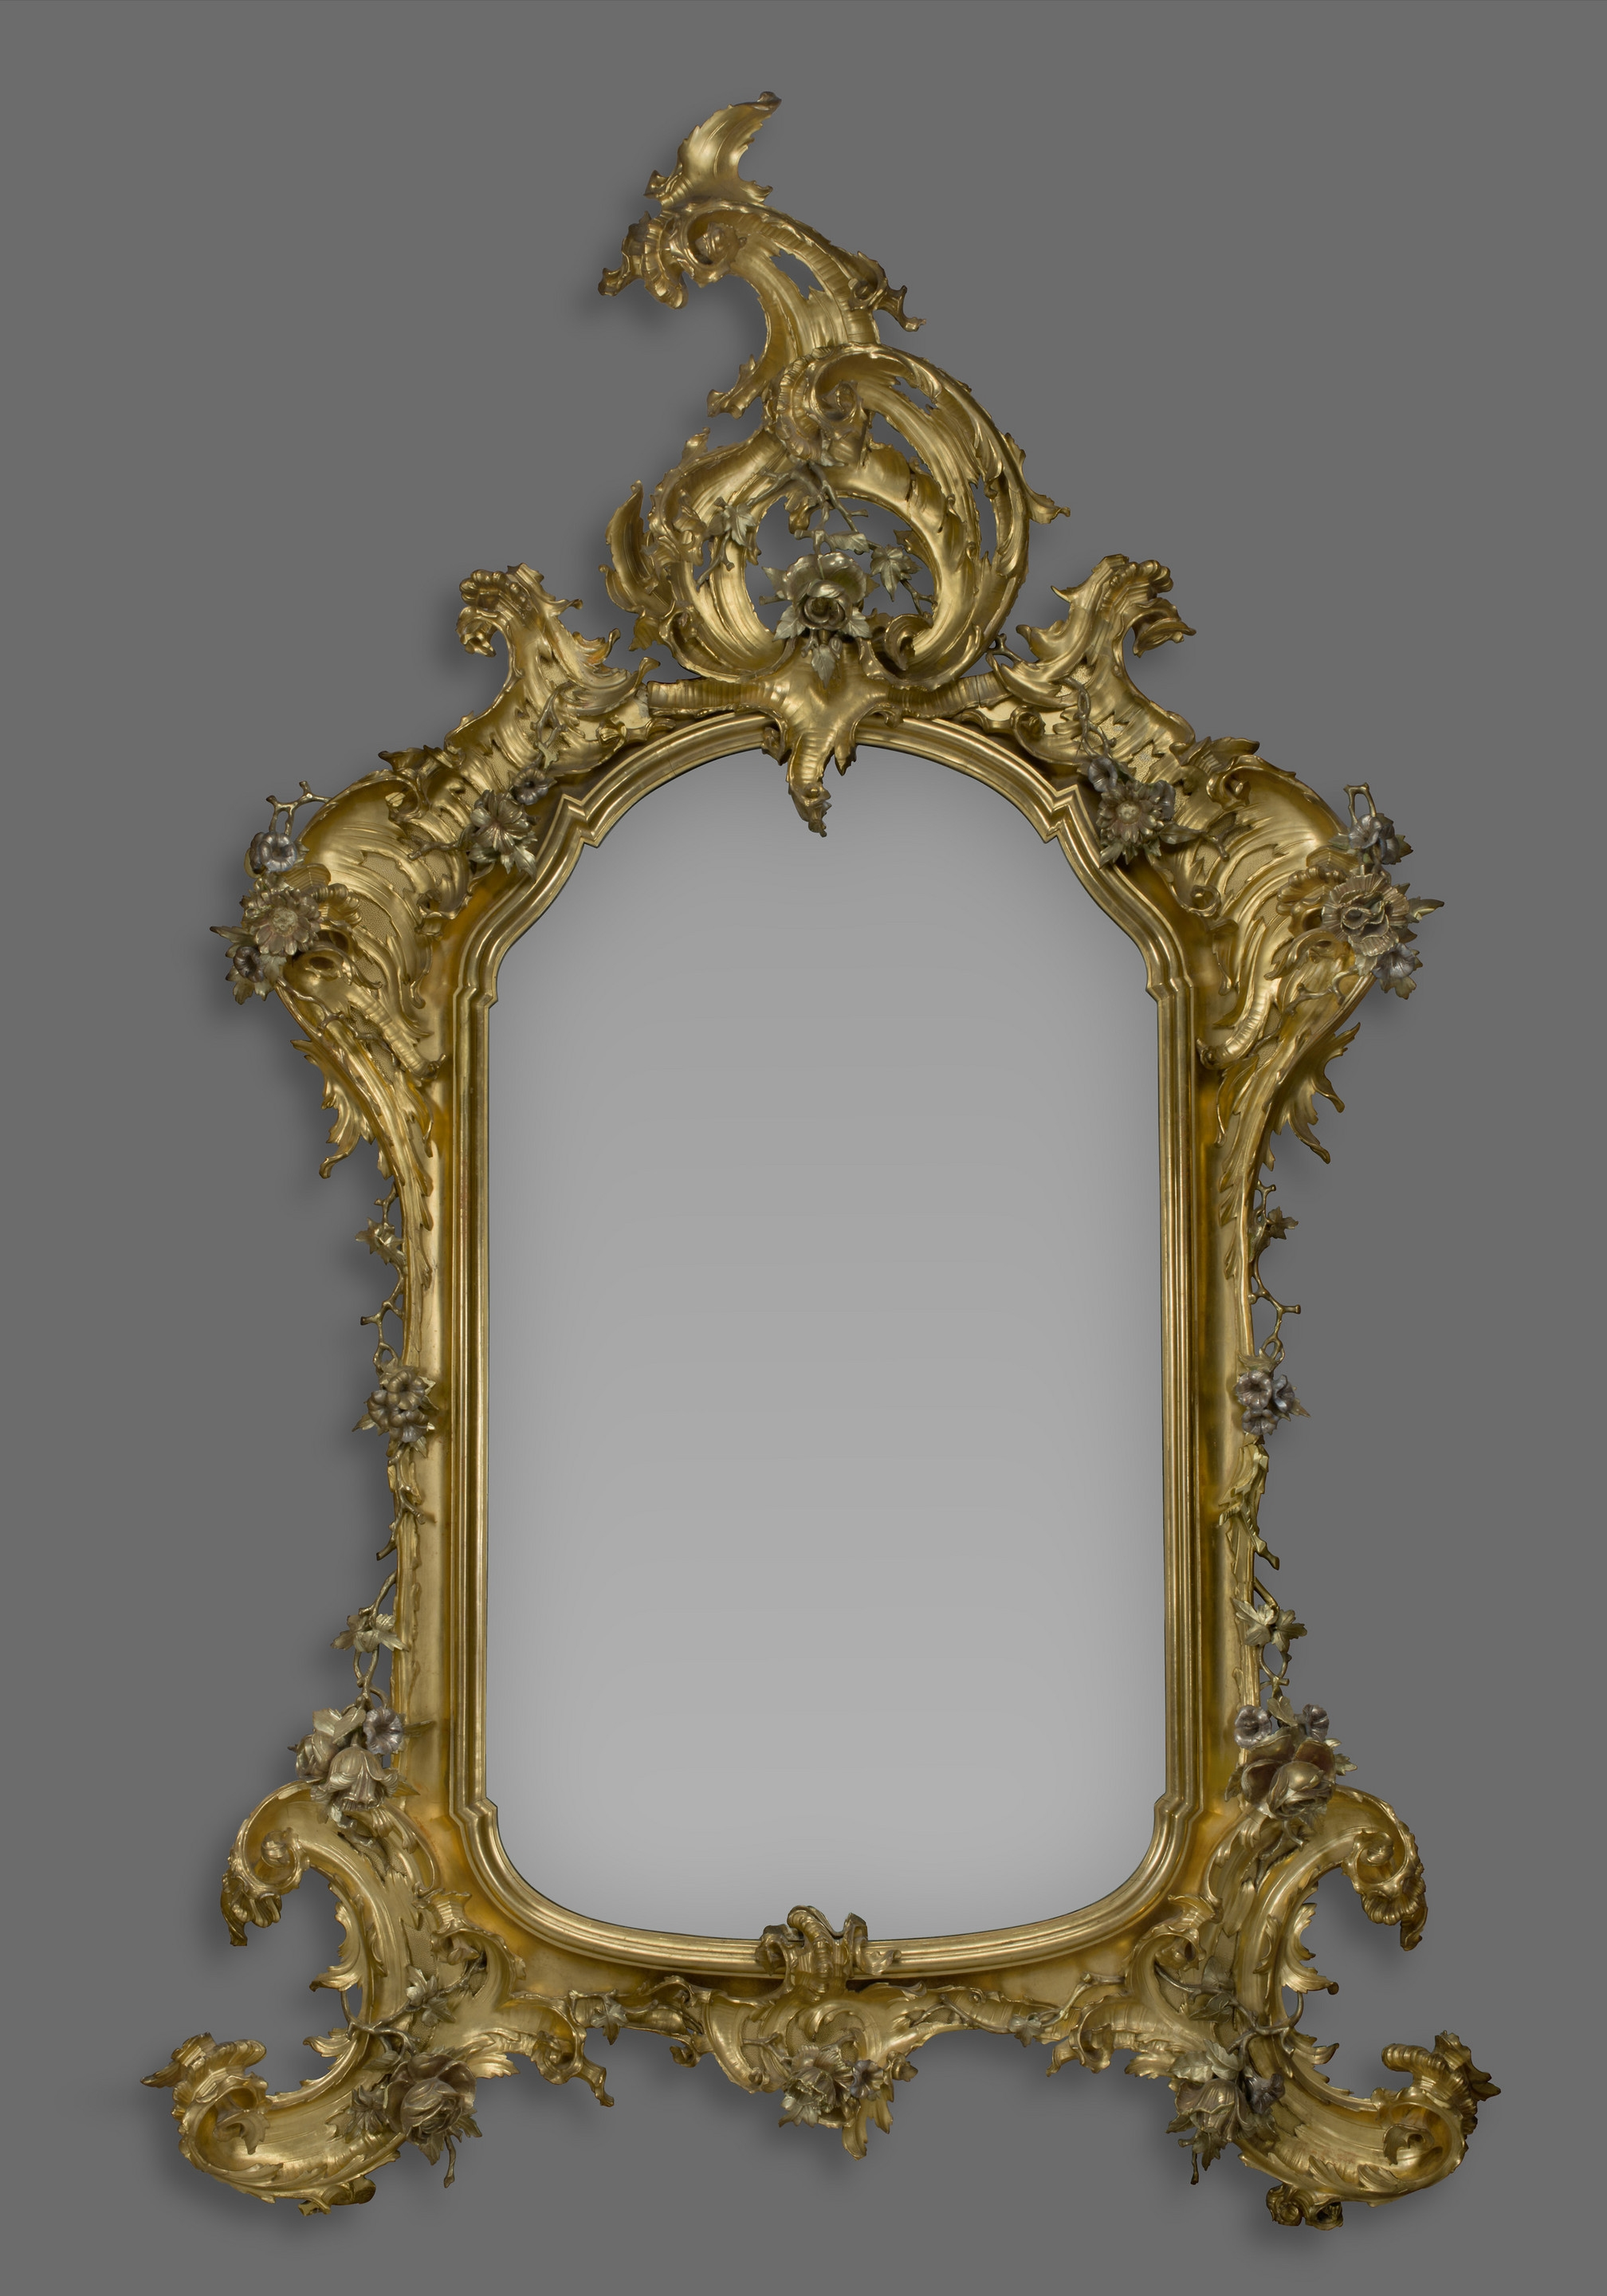 Antique Silver Mirrors The Uks Premier Antiques Portal Online With Regard To Victorian Mirrors For Sale (Image 4 of 15)